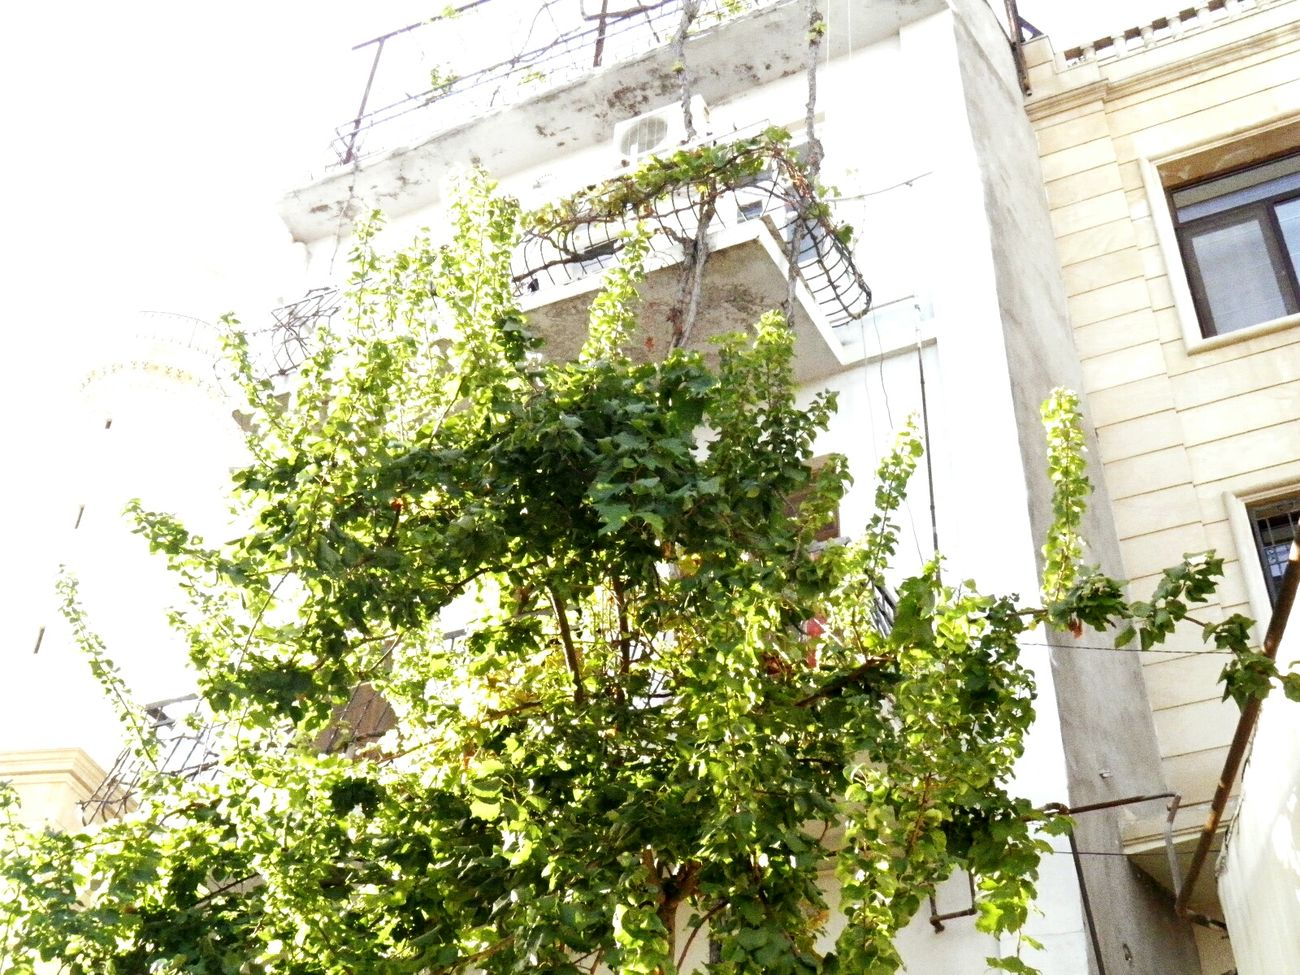 Architecture City Tree Outdoors Plant Nature Greenhouse Fragility Skyscraper Built Structure Growth Day Branch Building Exterior No People Sky First Eyeem Photo Low Angle View